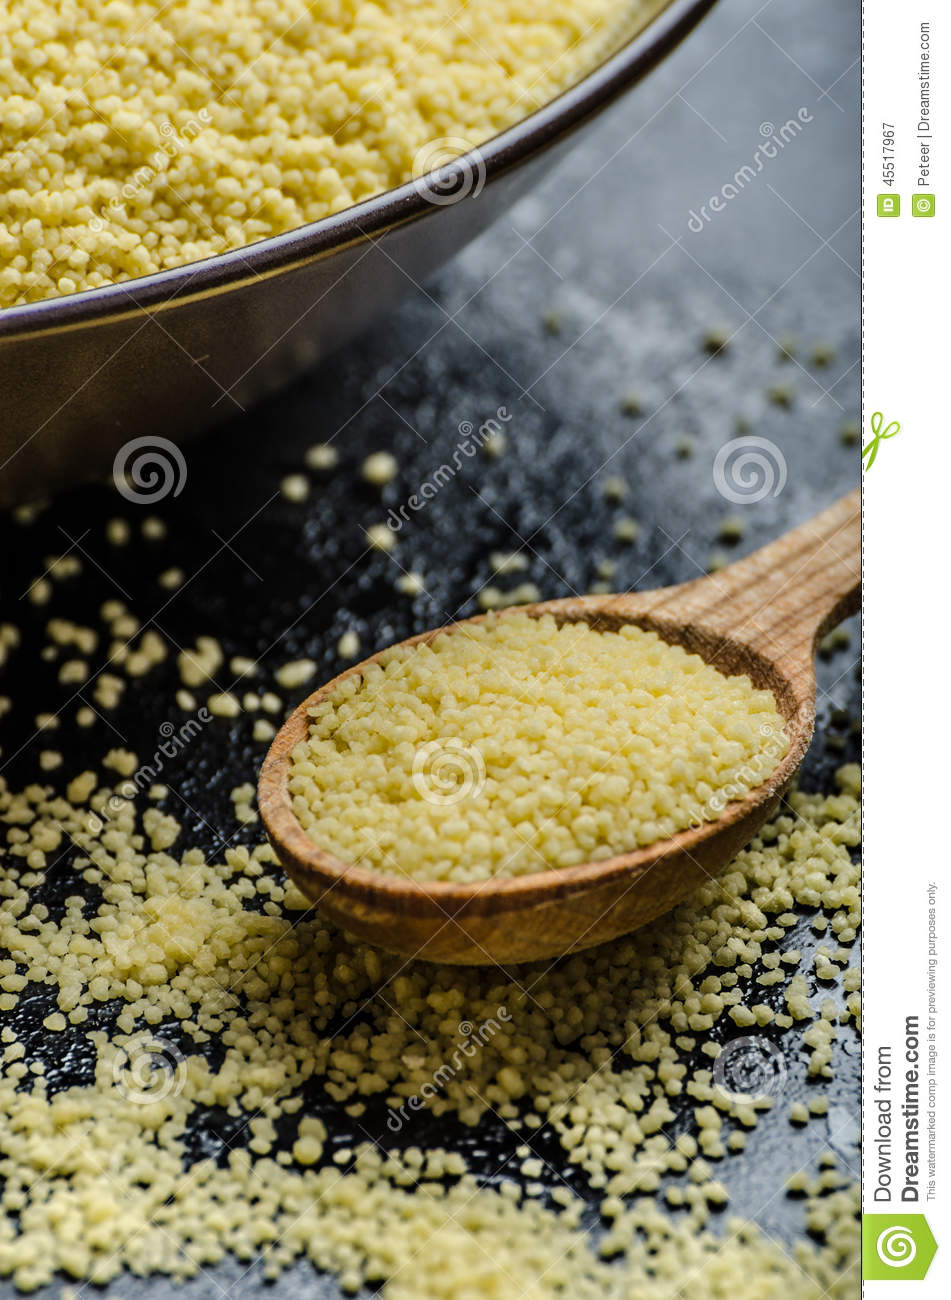 Couscous surowy na stole